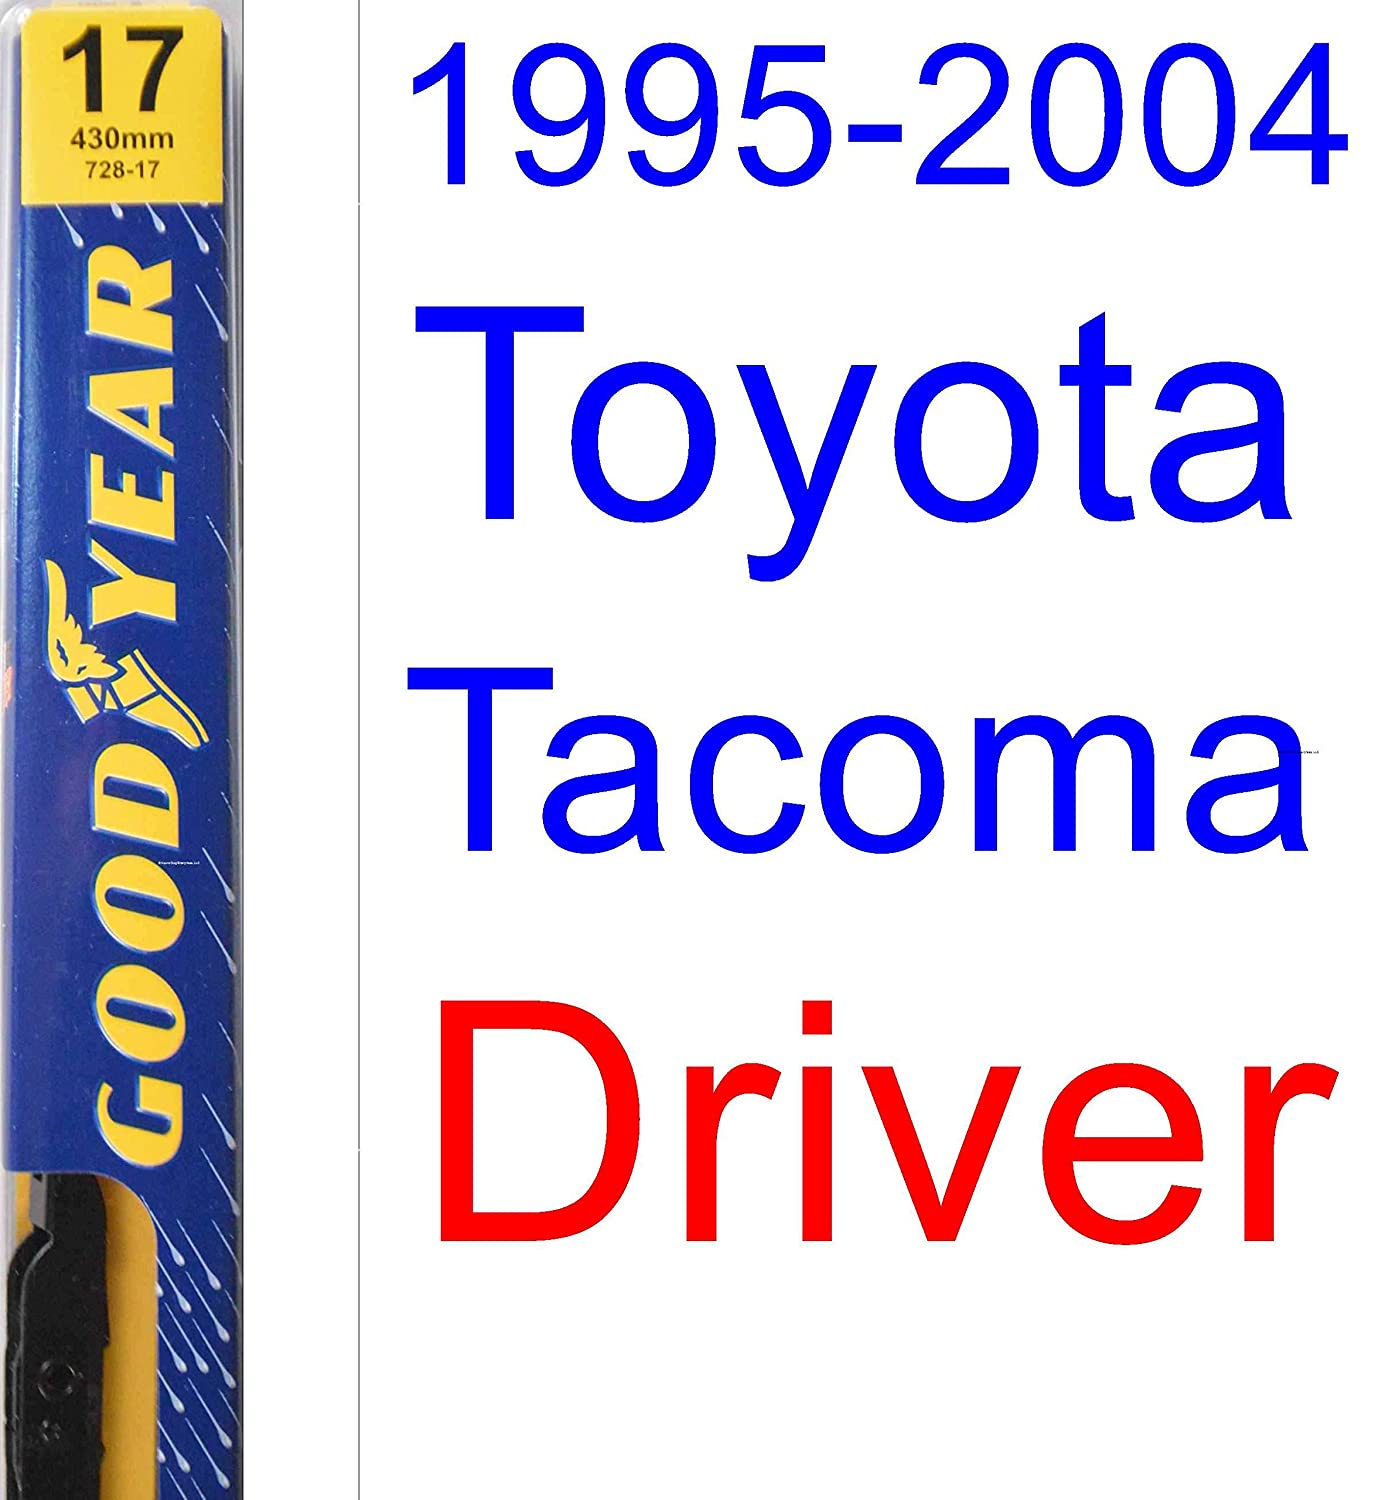 Amazon.com: 1995-2004 Toyota Tacoma Replacement Wiper Blade Set/Kit (Set of 2 Blades) (Goodyear Wiper Blades-Premium) (1996,1997,1998,1999,2000,2001,2002 ...